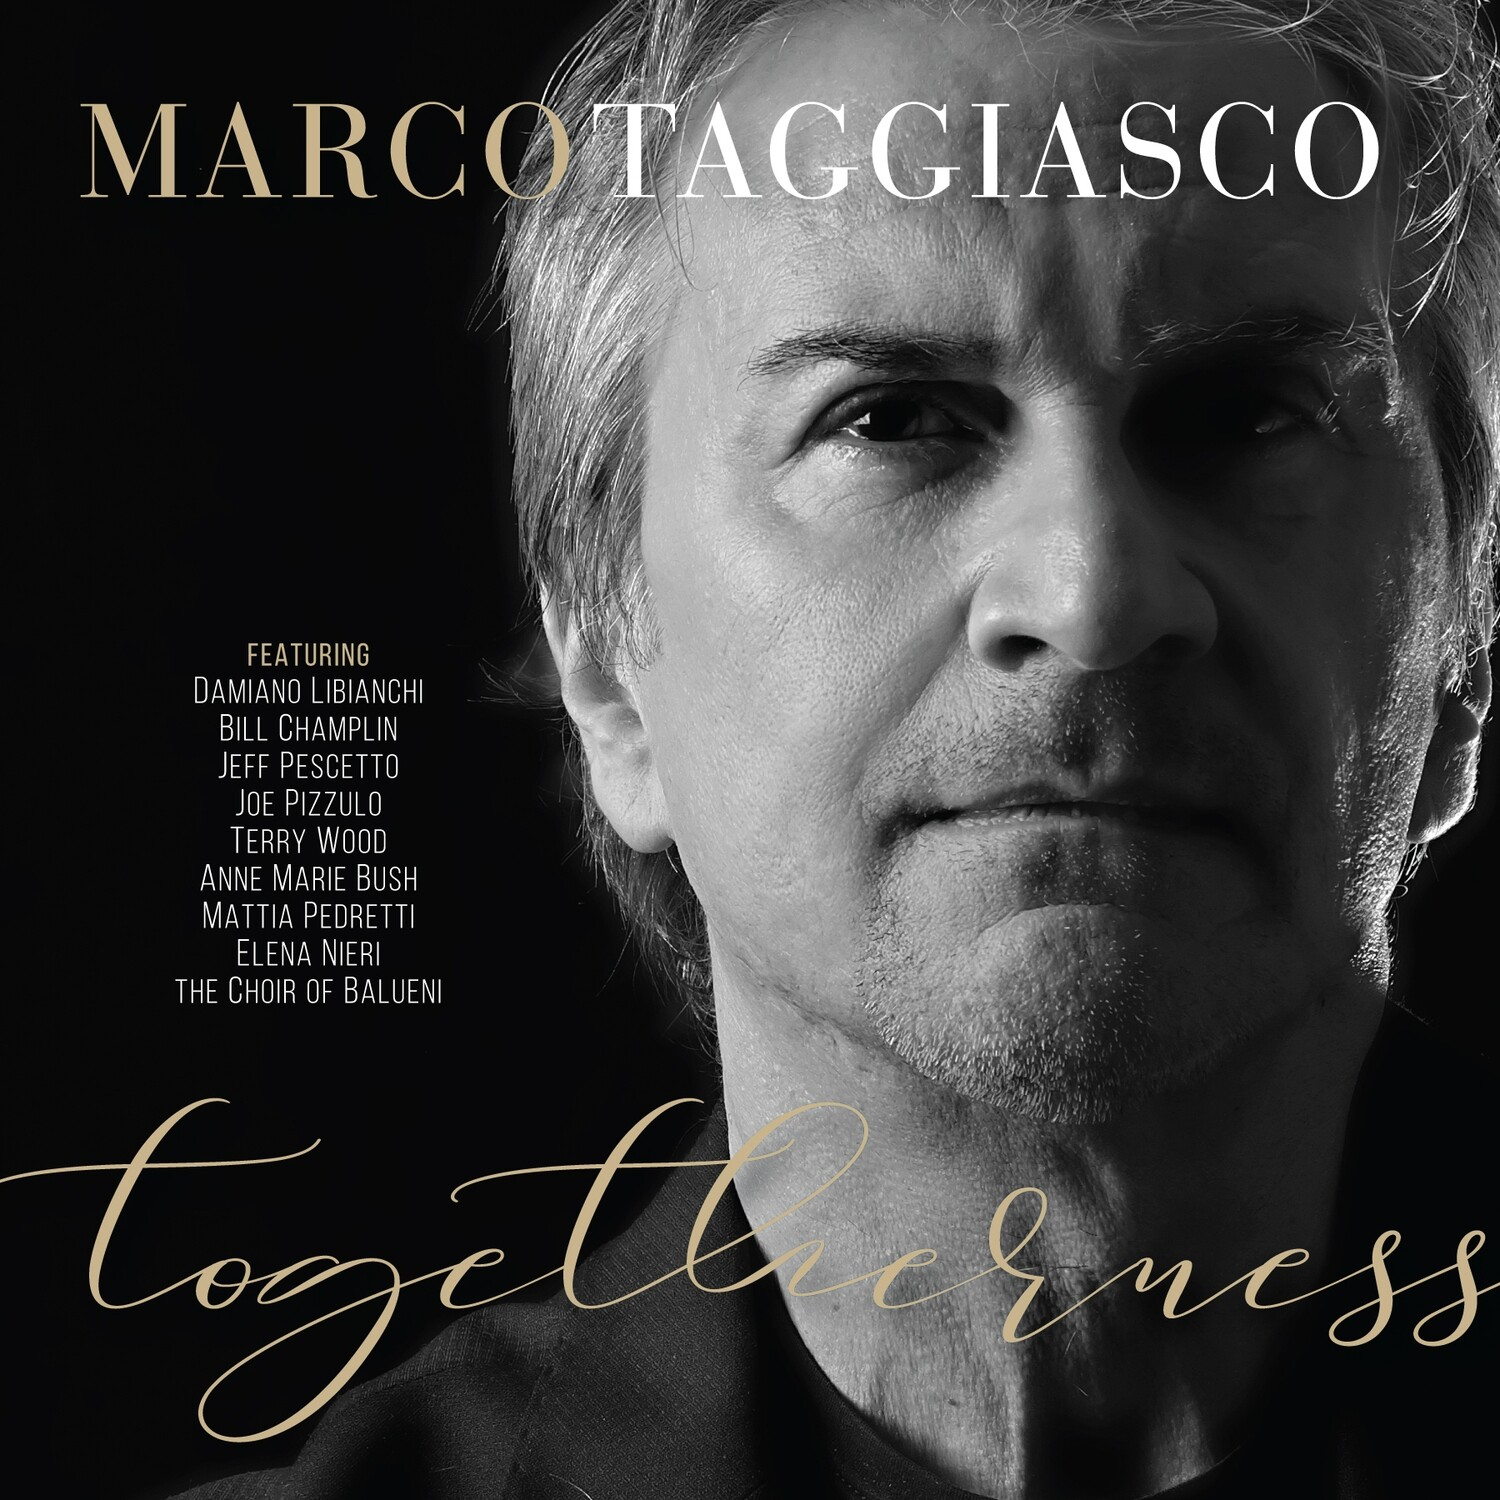 Marco Taggiasco - Togetherness (featuring Bill Champlin, Joe Pizzulo, Jeff Pescetto, Damiano Libianchi)